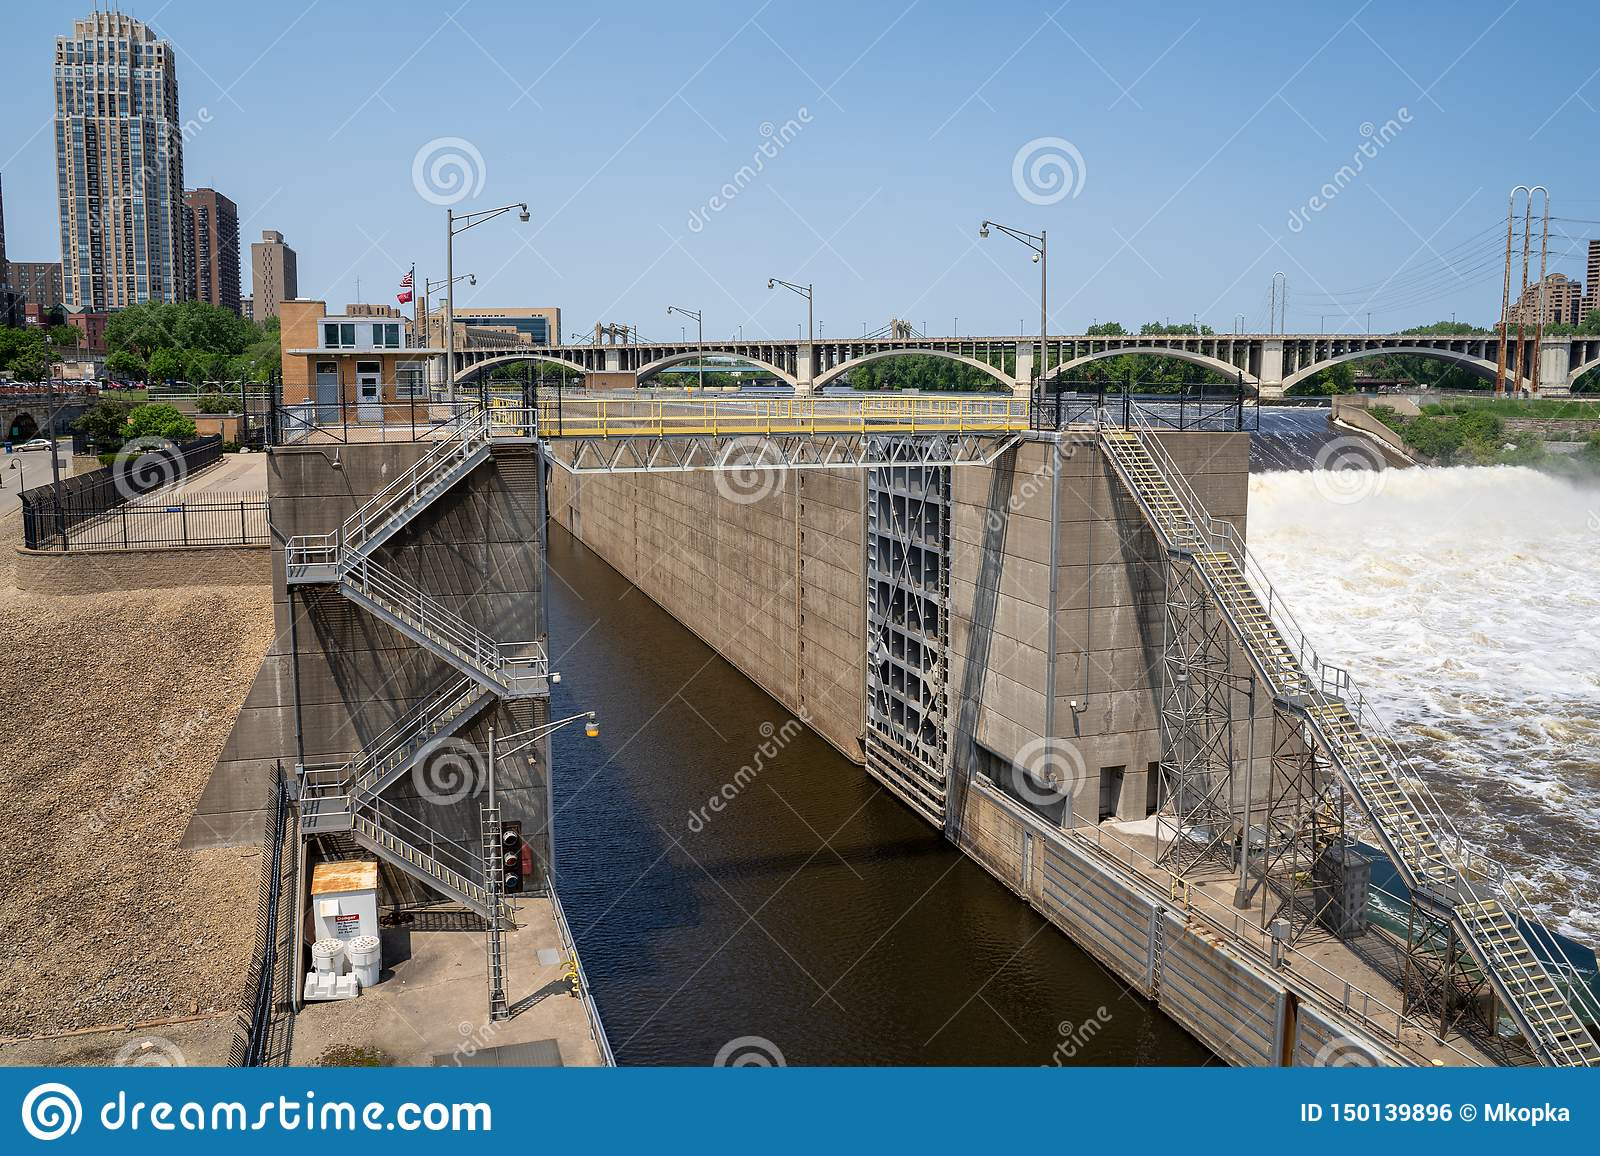 Minneapolis, Minnesota - June 1, 2019: View of the Upper St. Anthony Falls Lock and Dam along the Mississippi River in downtown